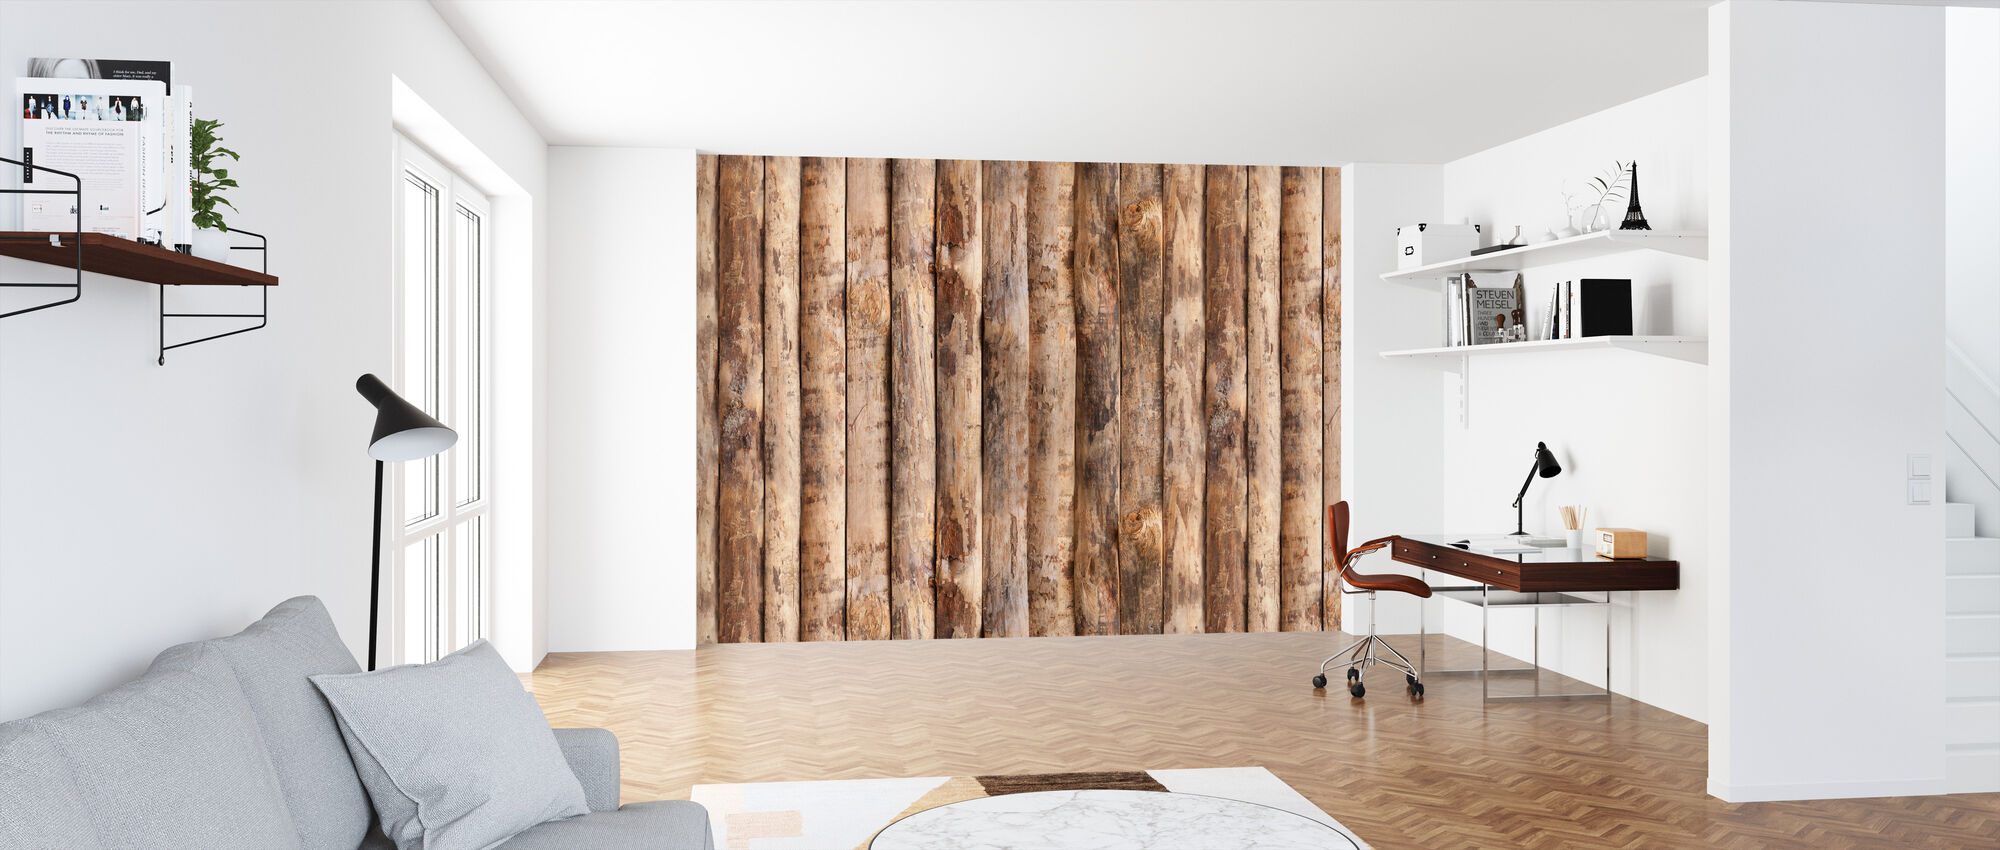 Upright Wooden Wall - Wallpaper - Office